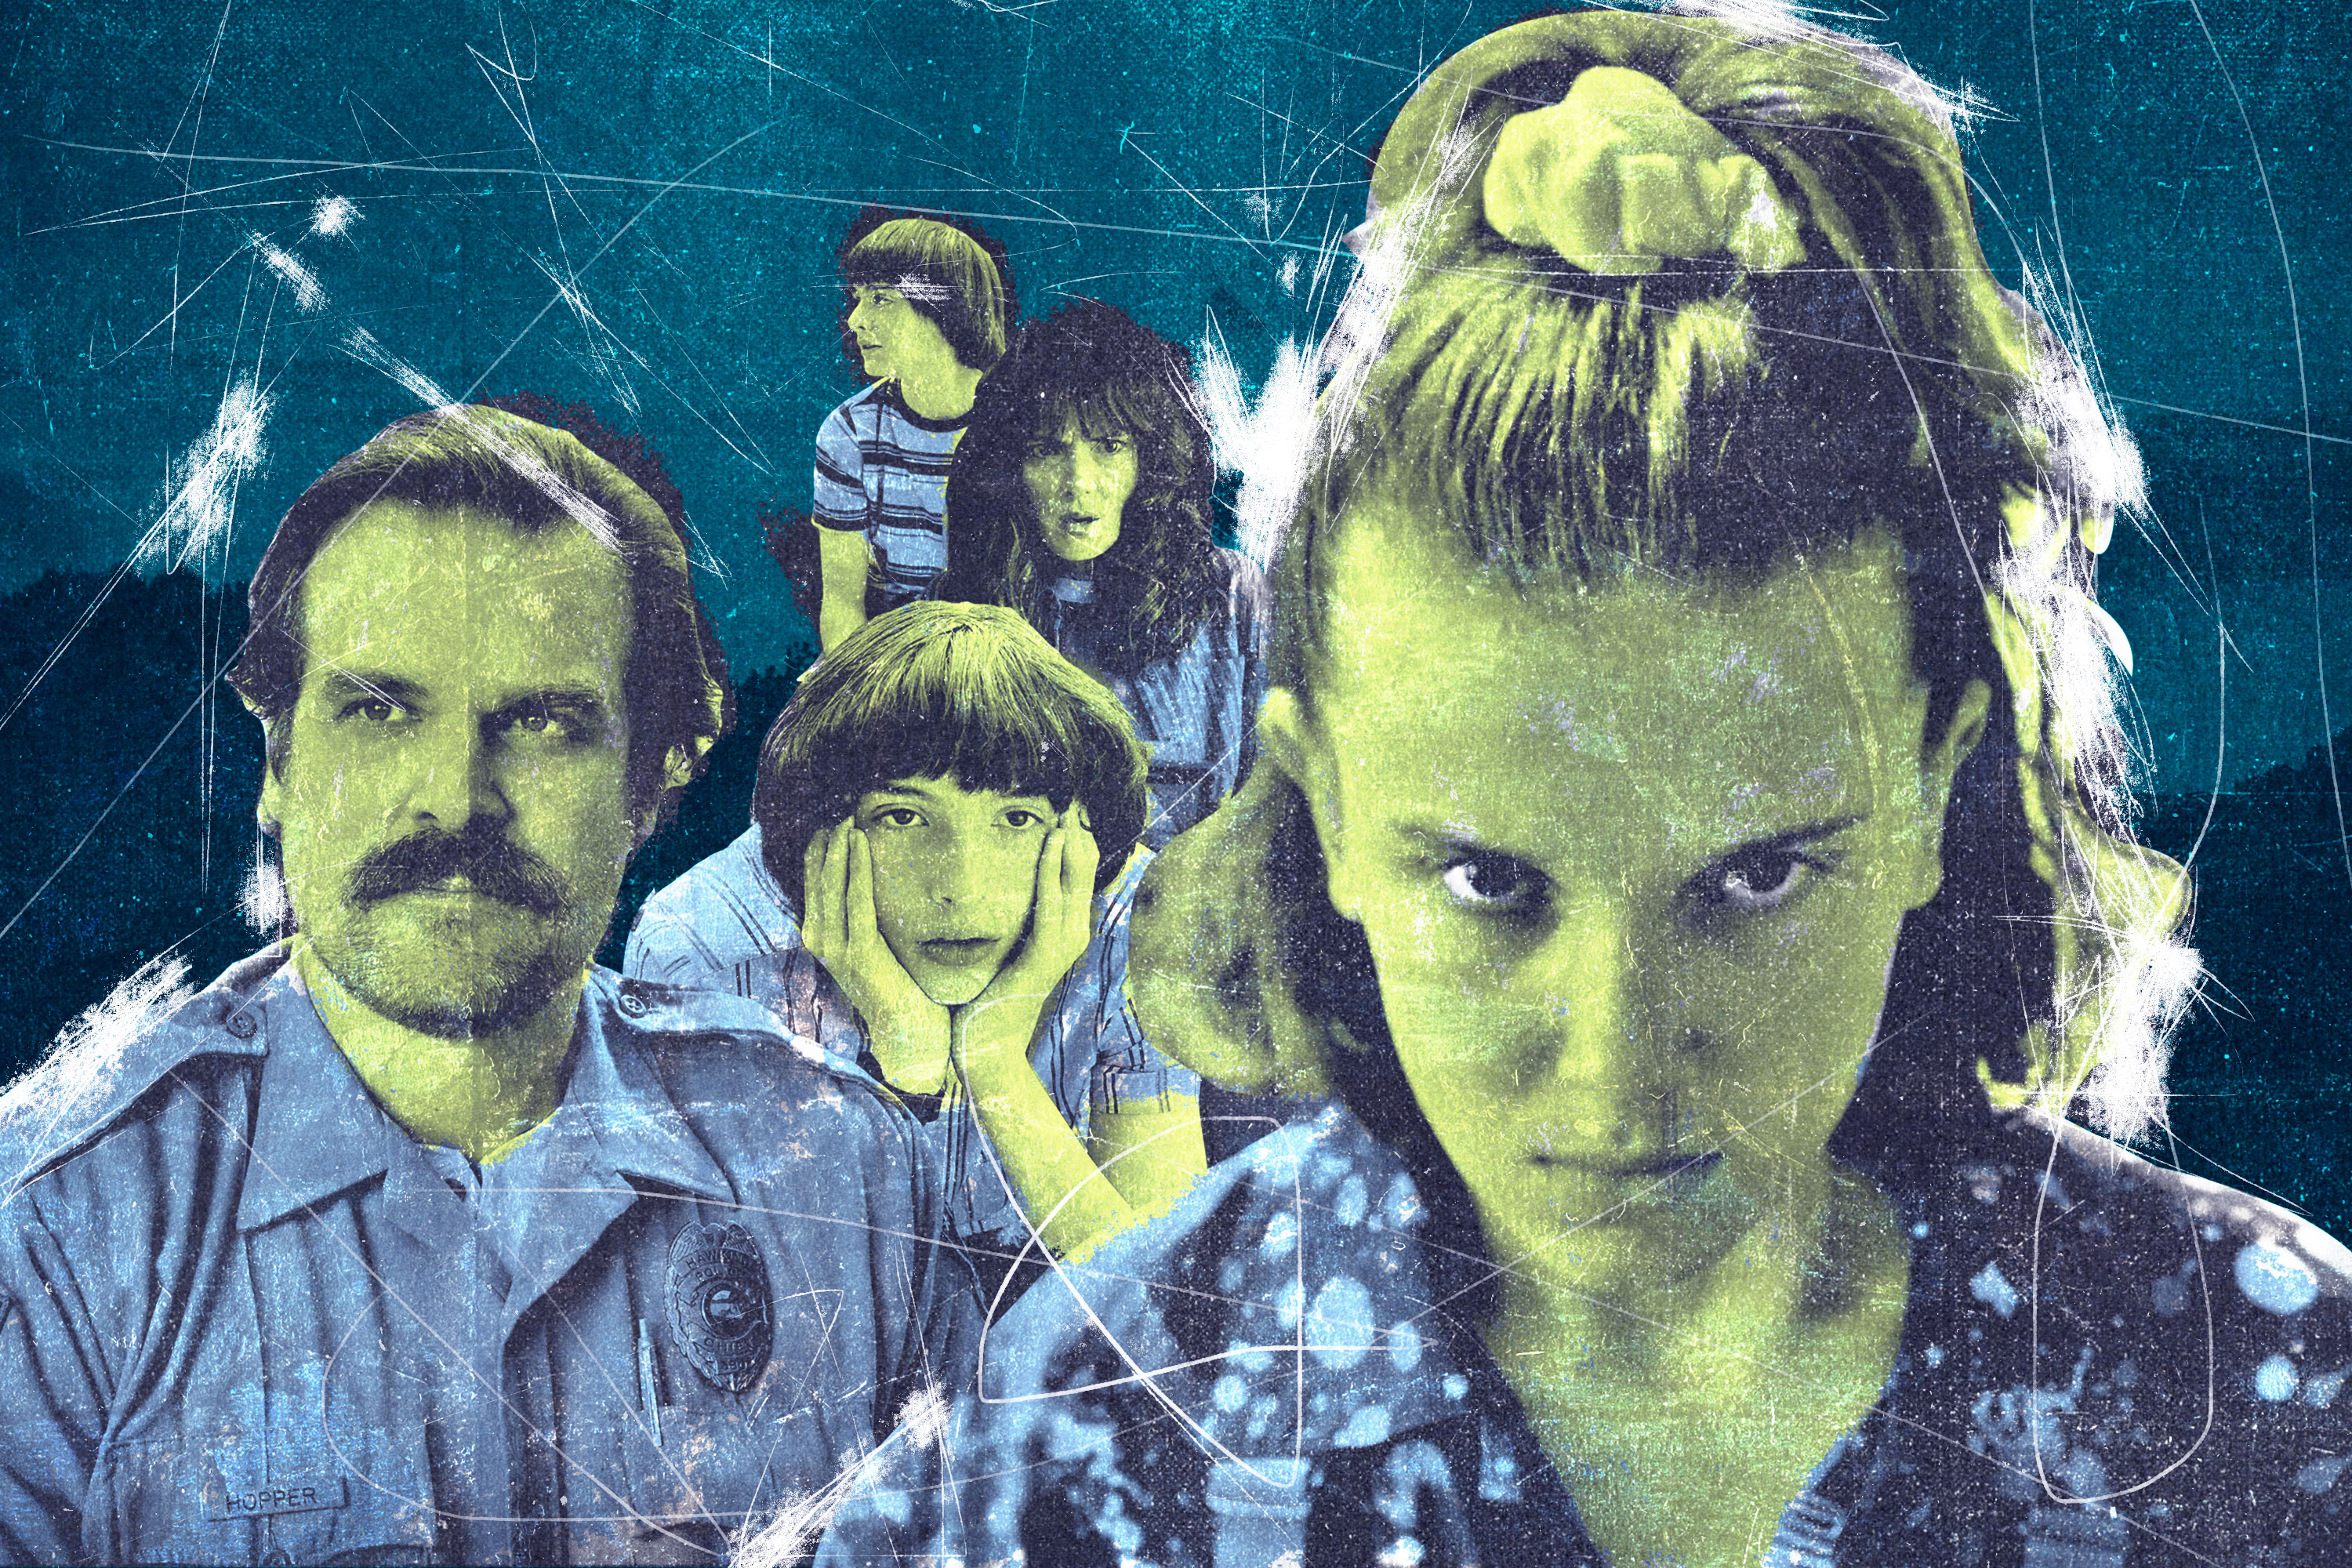 Eight Lingering Questions After 'Stranger Things' Season 3